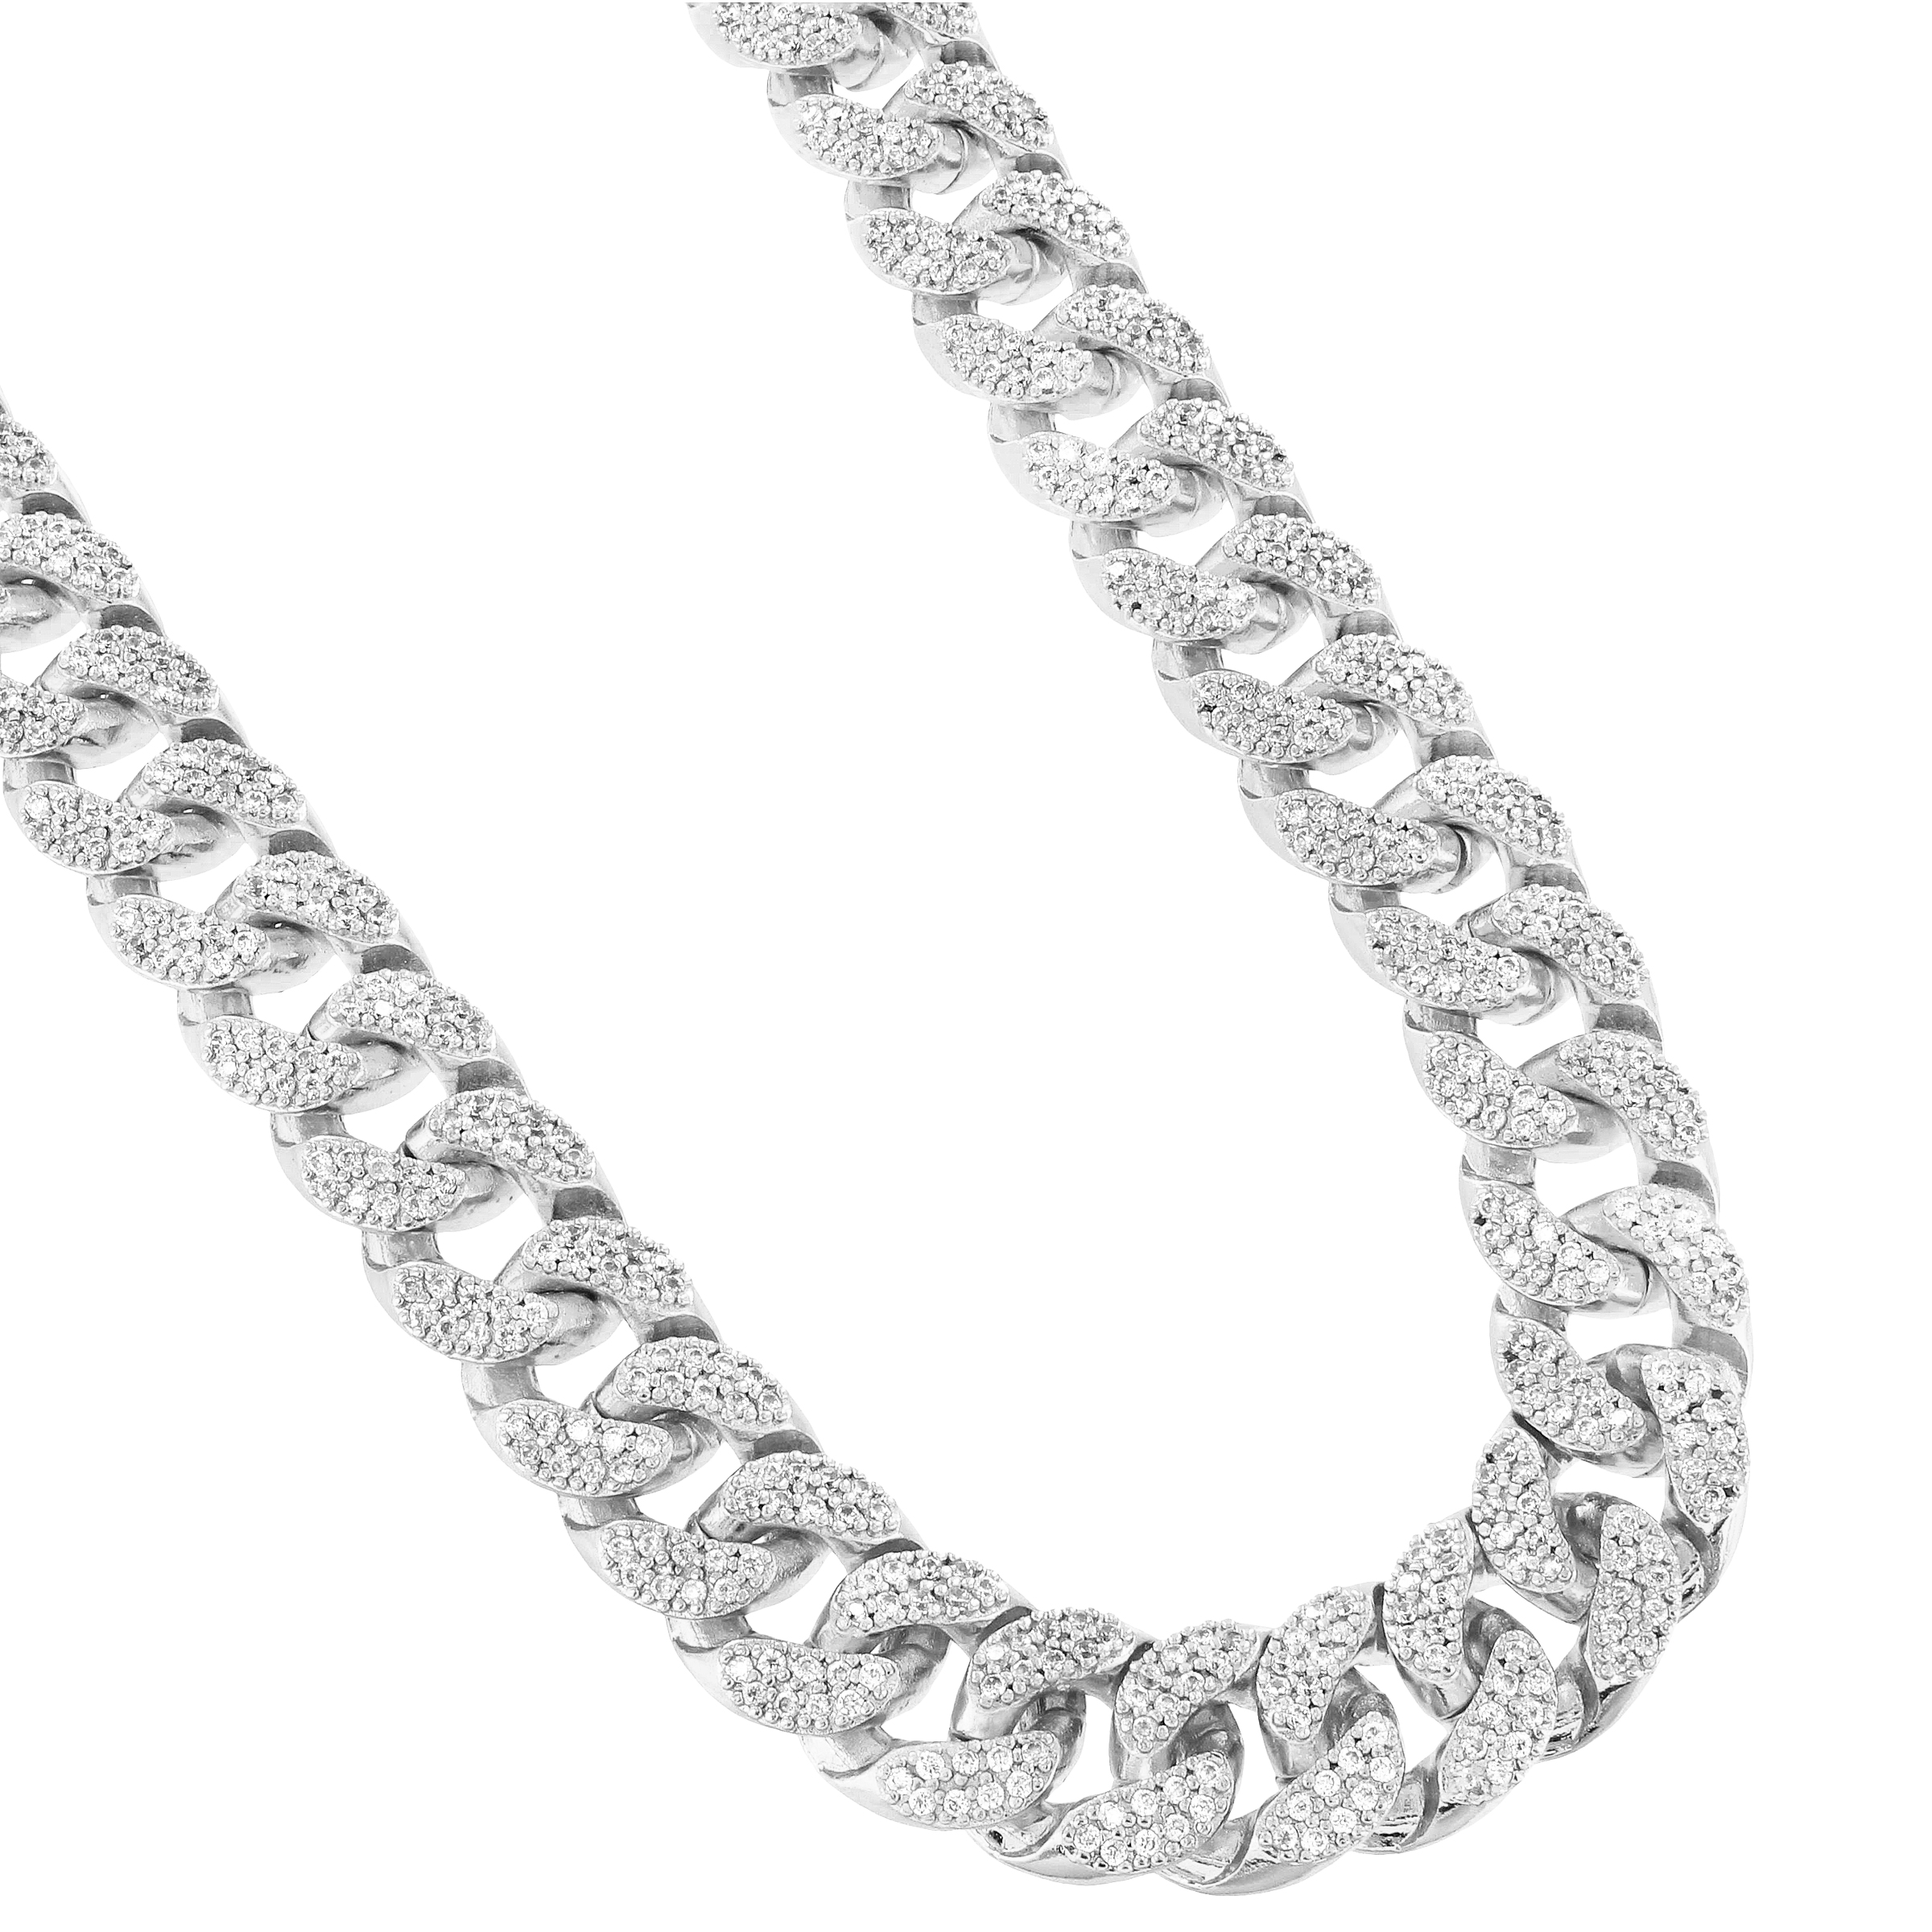 Miami Cuban Link 18 INCH CHAIN 15MM Necklace For Men Iced Out Lab Created Cubic Zirconias Silver Tone Heavy